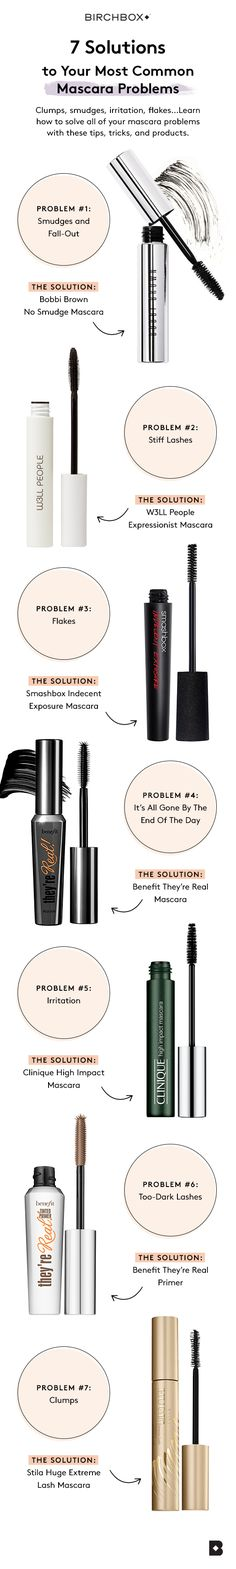 Mascara is universally beloved by just about everyone. But as much as we rely its ability to plump, lengthen and volumize our lashes, we sometimes avoid applying it due to unfortunate smudges, clumps, irritation, and flakes. That is, until now. Click the image and find the best products and tricks to solve your most-common mascara problems.